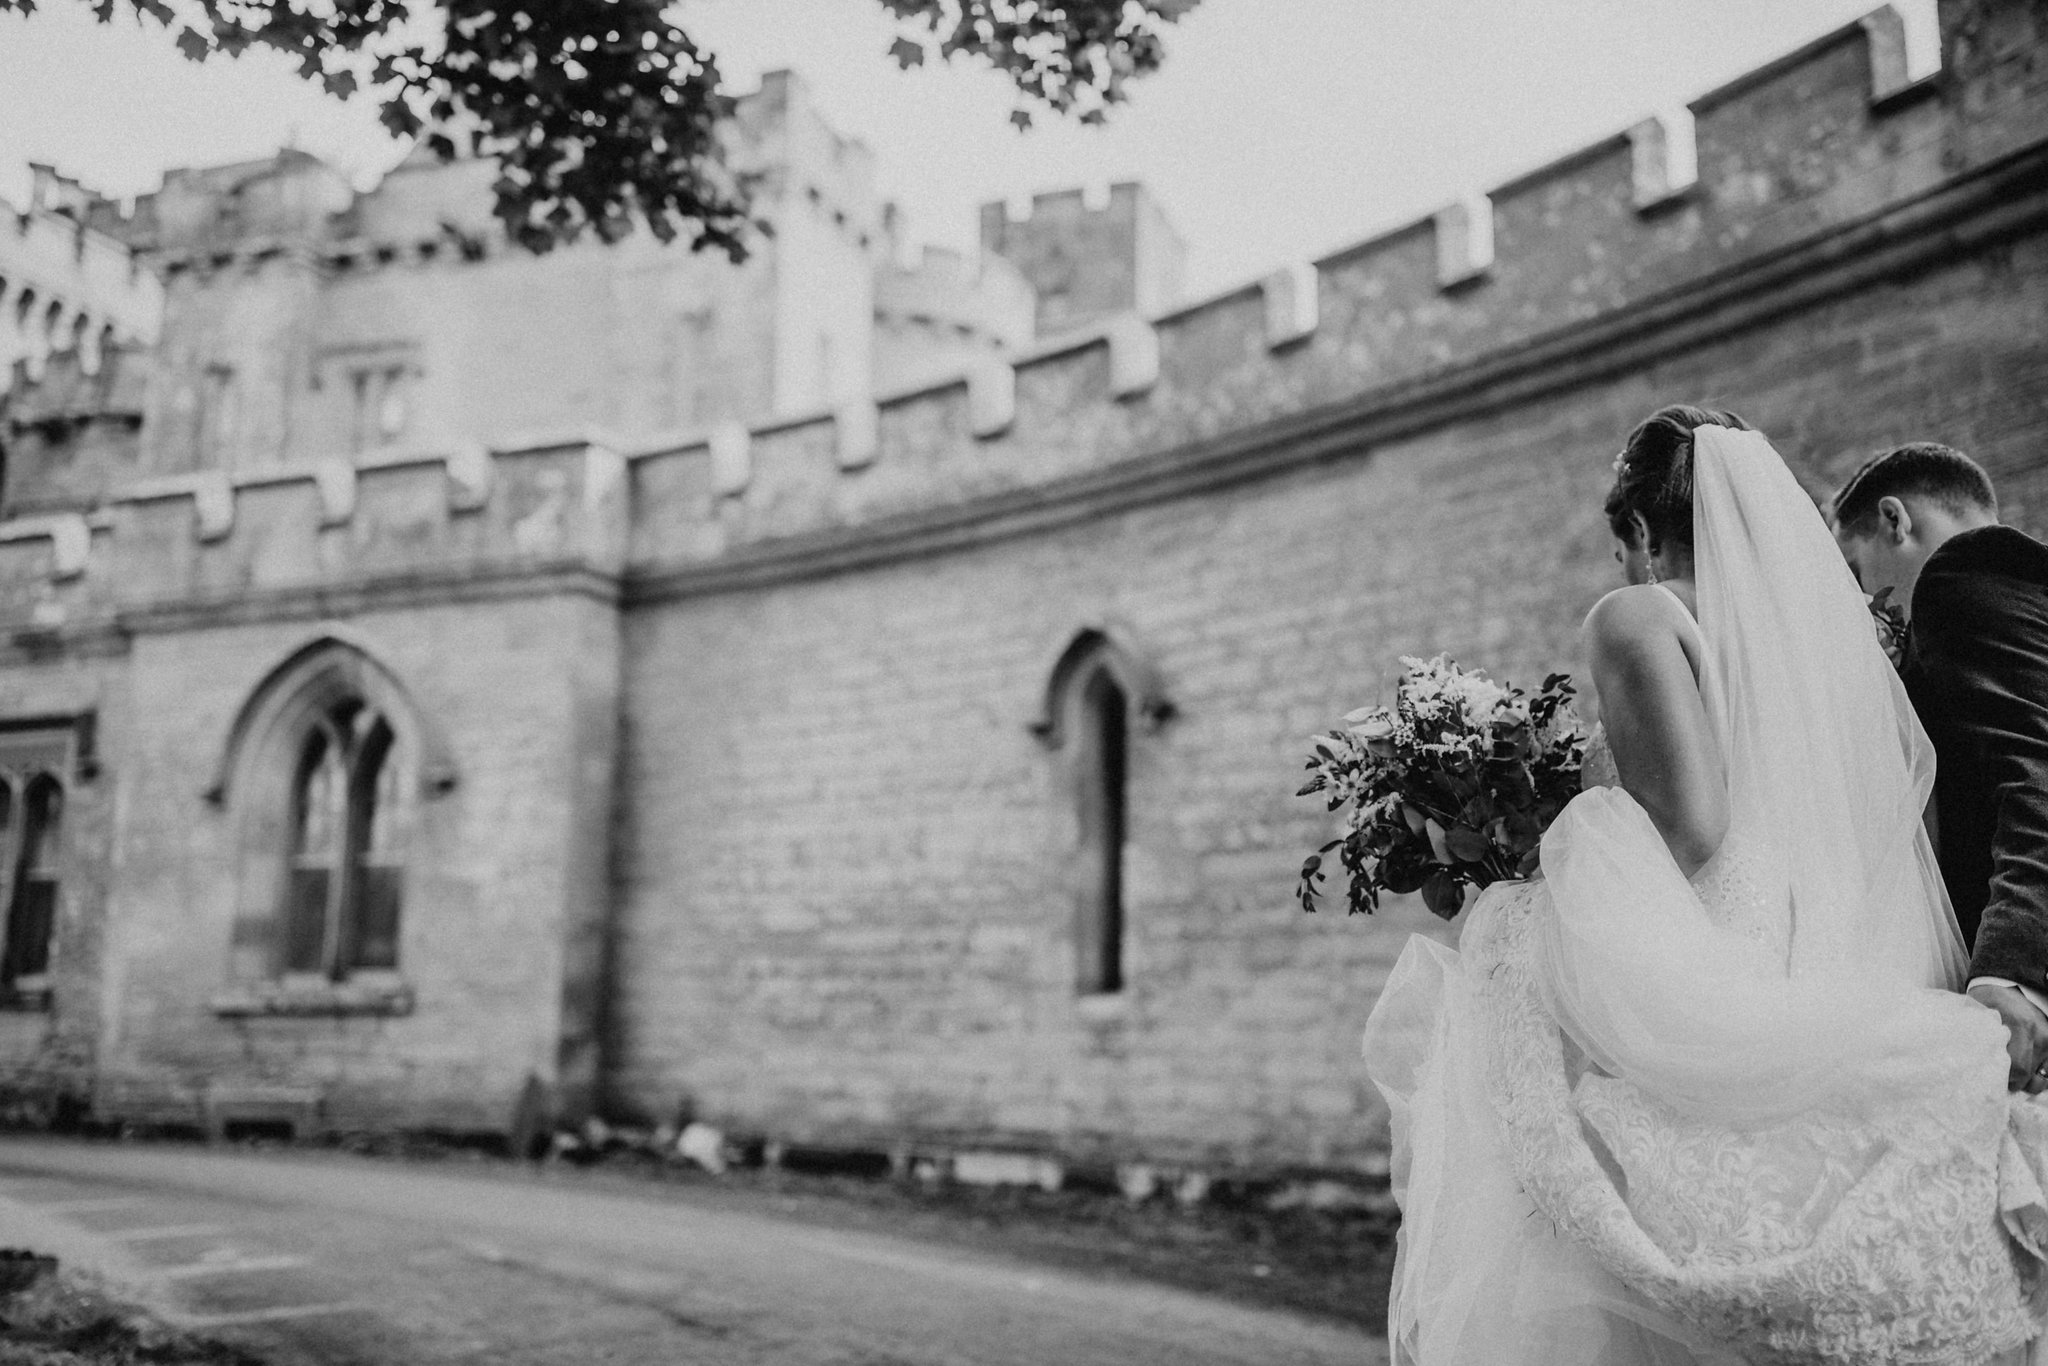 Duns_Castle_wedding_photographer_ross_alexander_photography (79).jpg